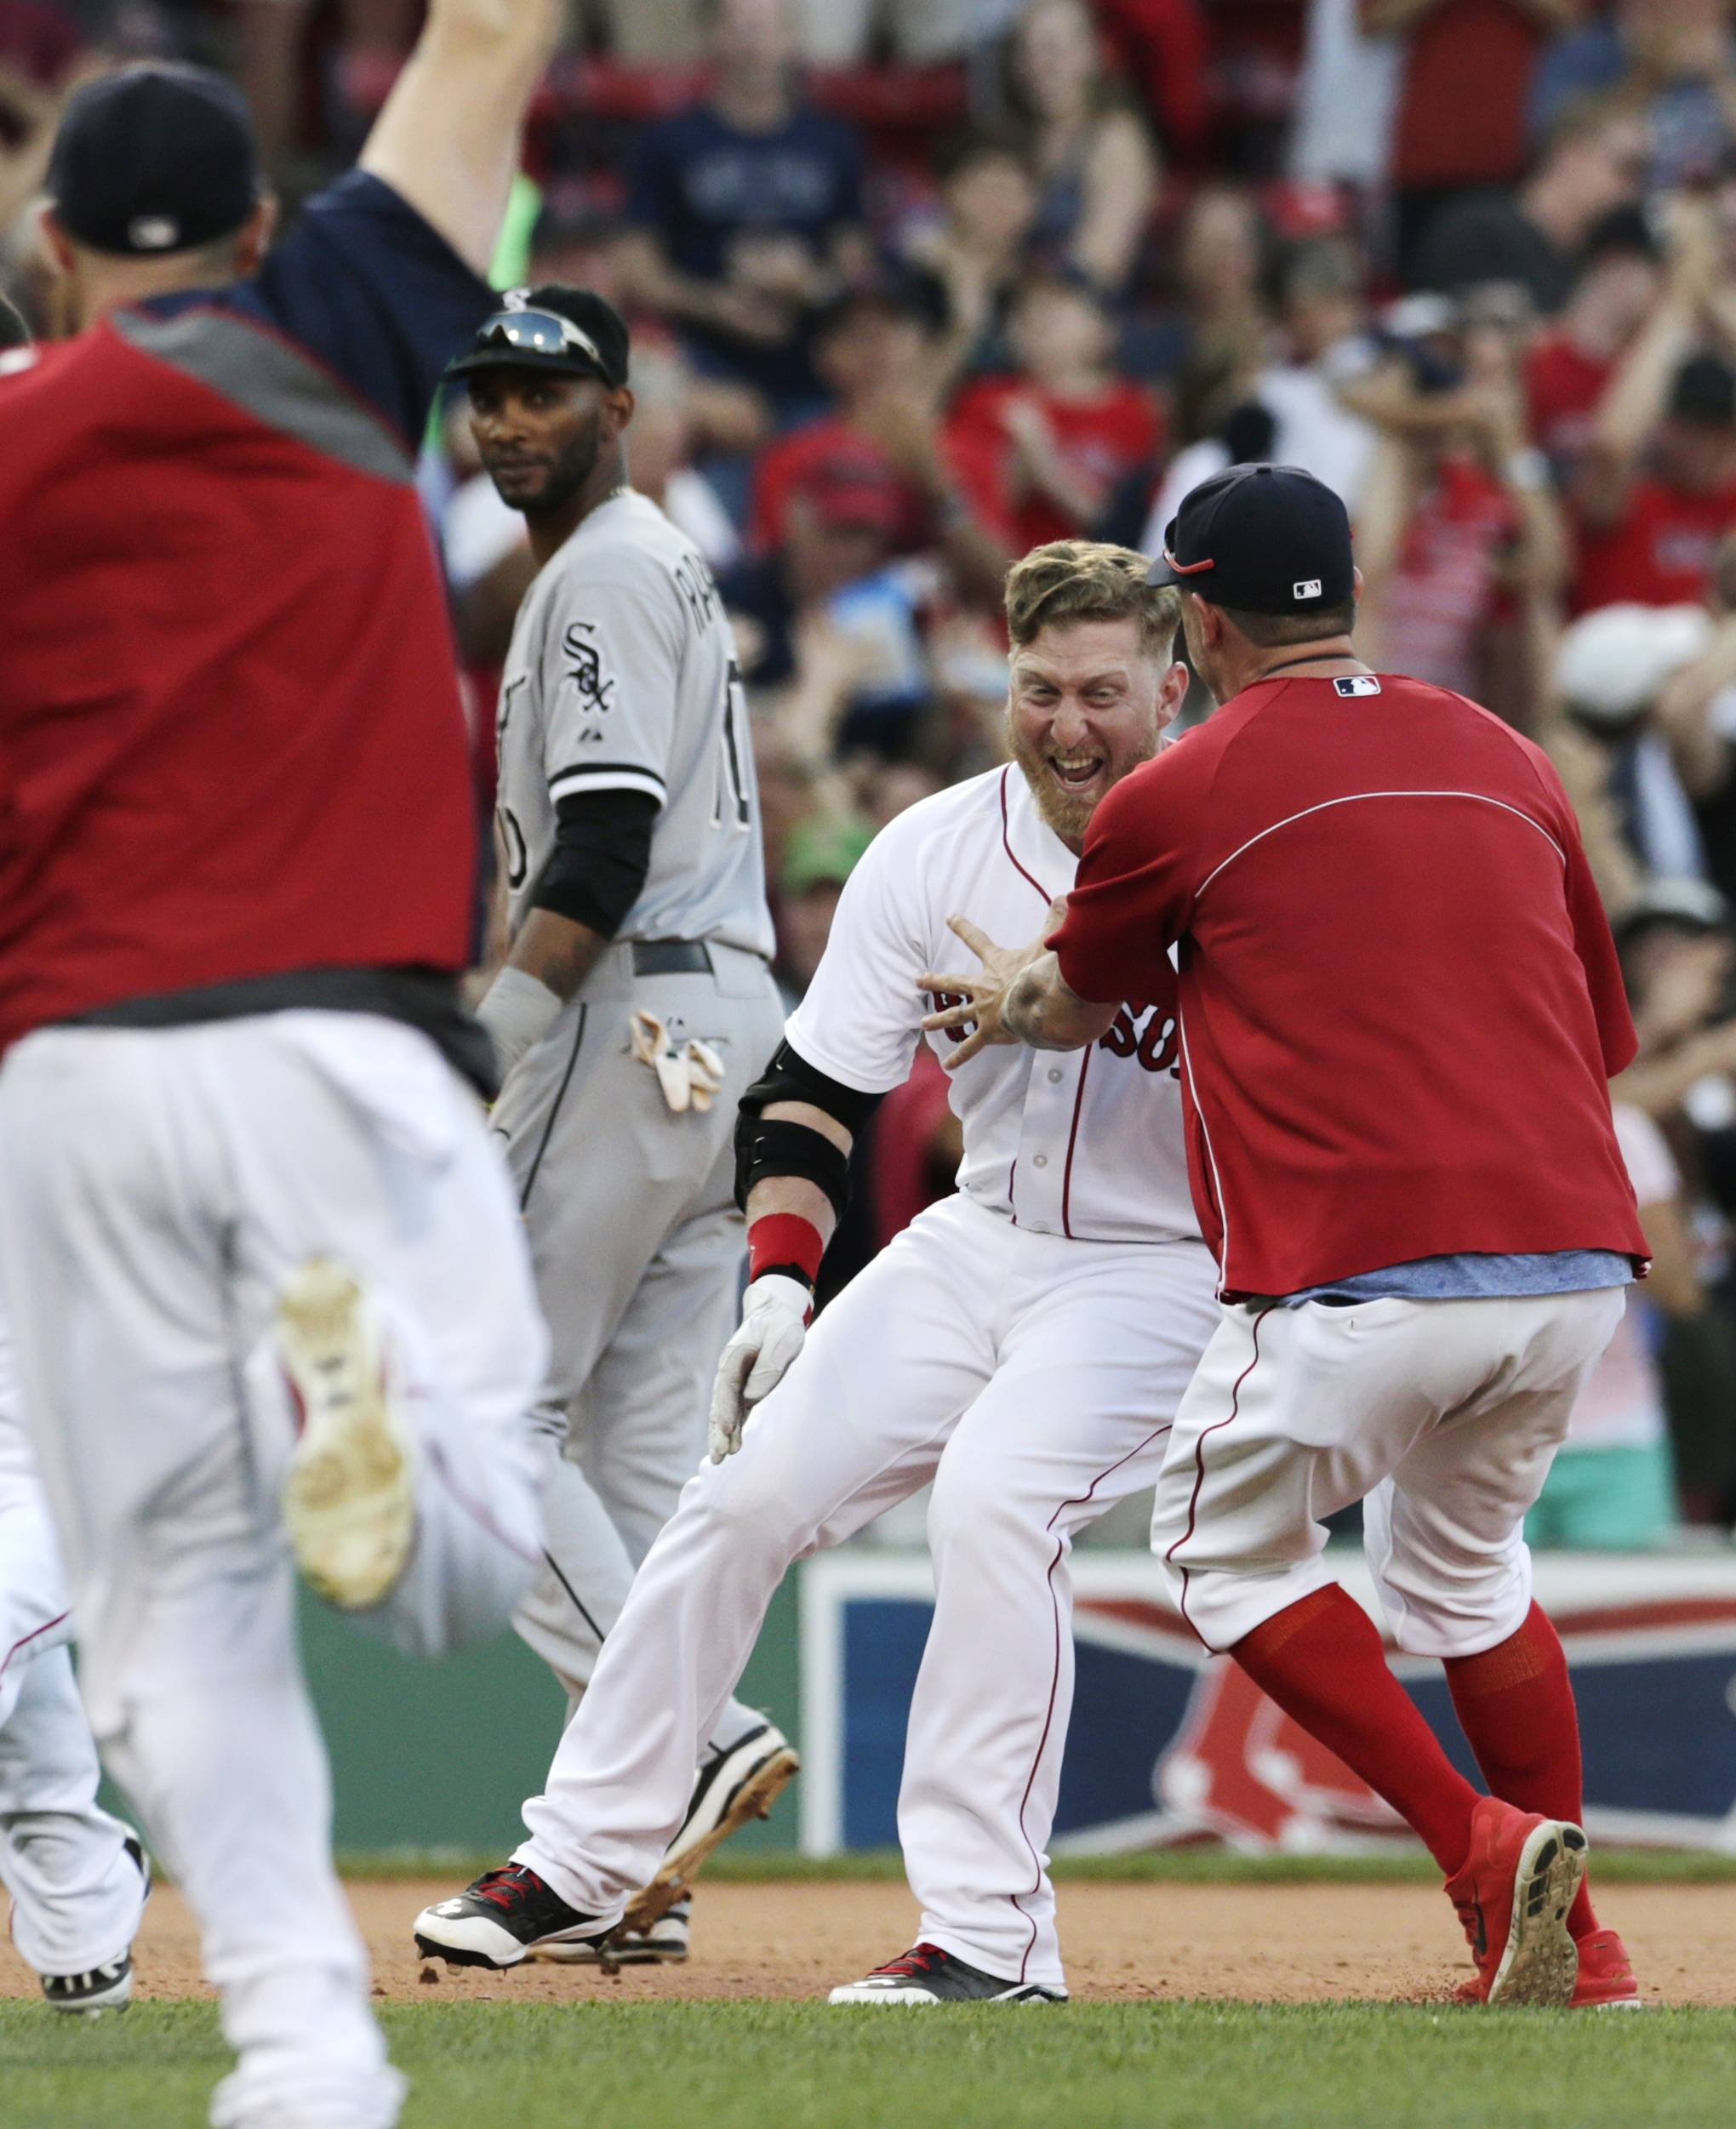 As Alexei Ramirez watches, Boston Red Sox pinch hitter Mike Carp, center is congratulated by teammates after his walk-off RBI single, breaking a 3-3 tie, against the White Sox. The Red Sox defeated the White Sox 4-3 in 10 innings.